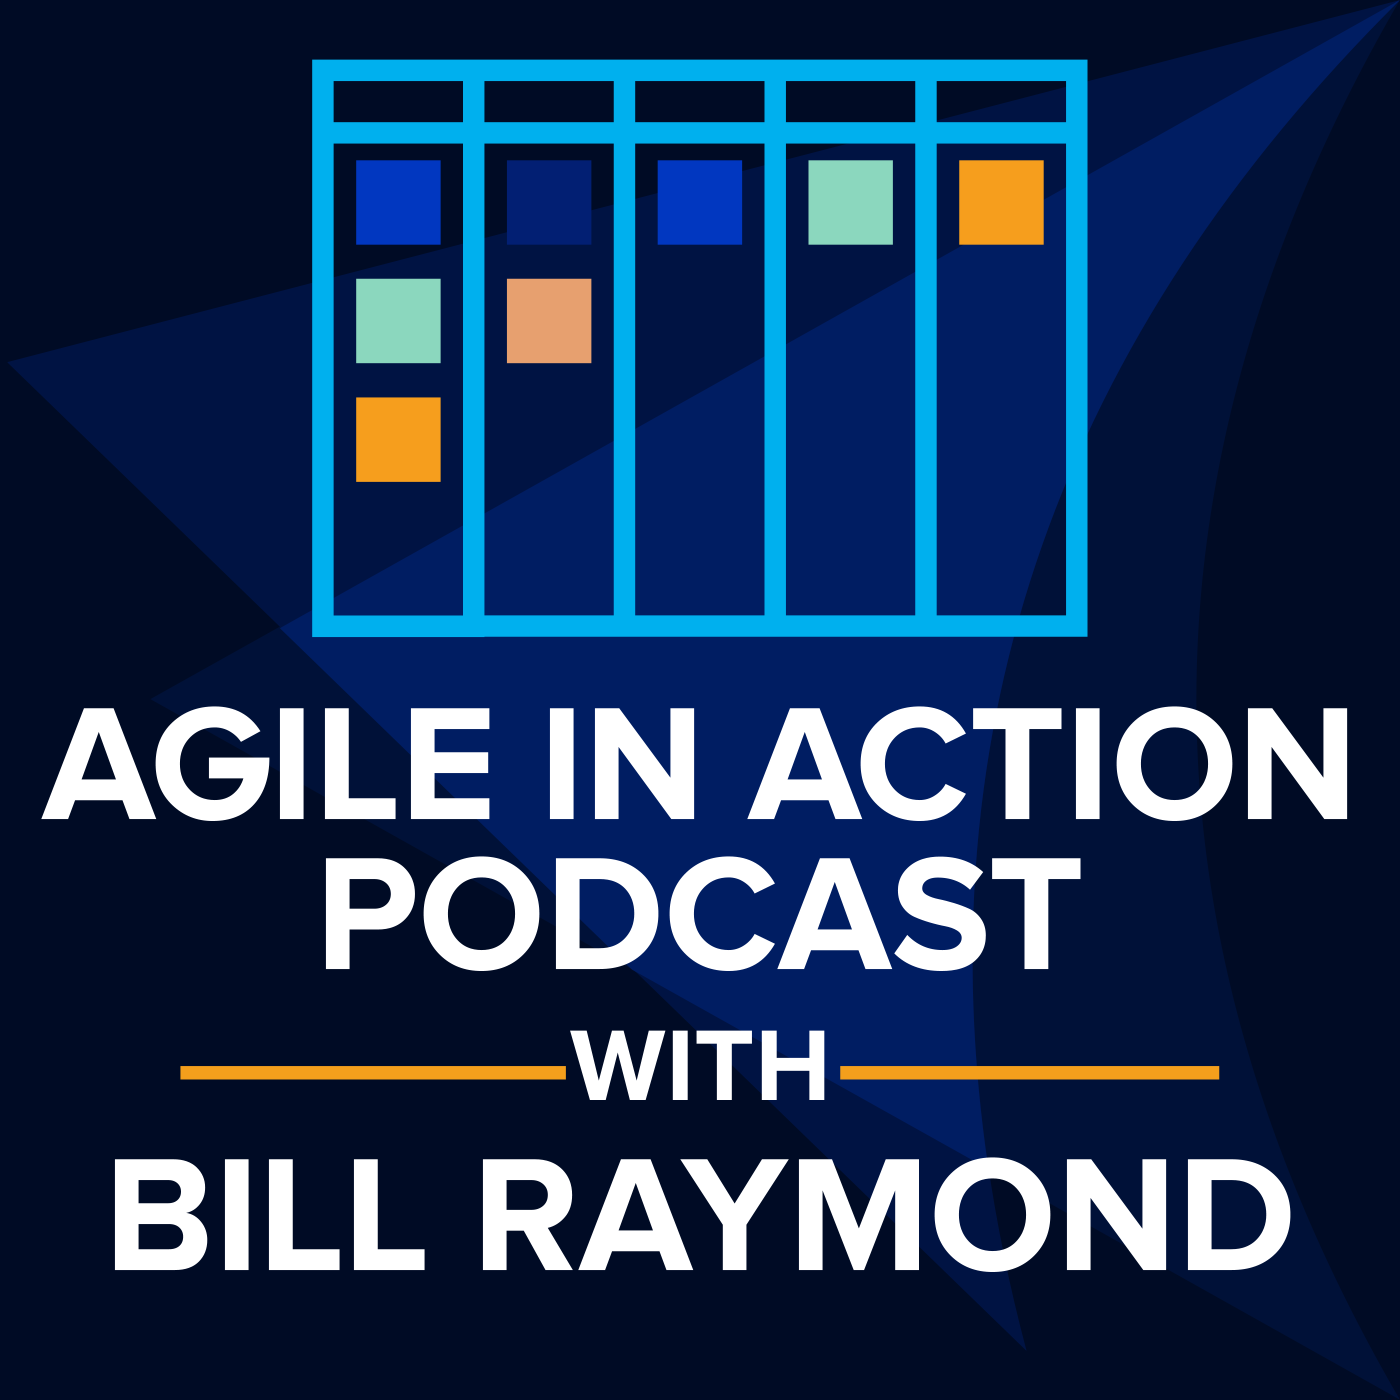 Agile in Action with Bill Raymond show art